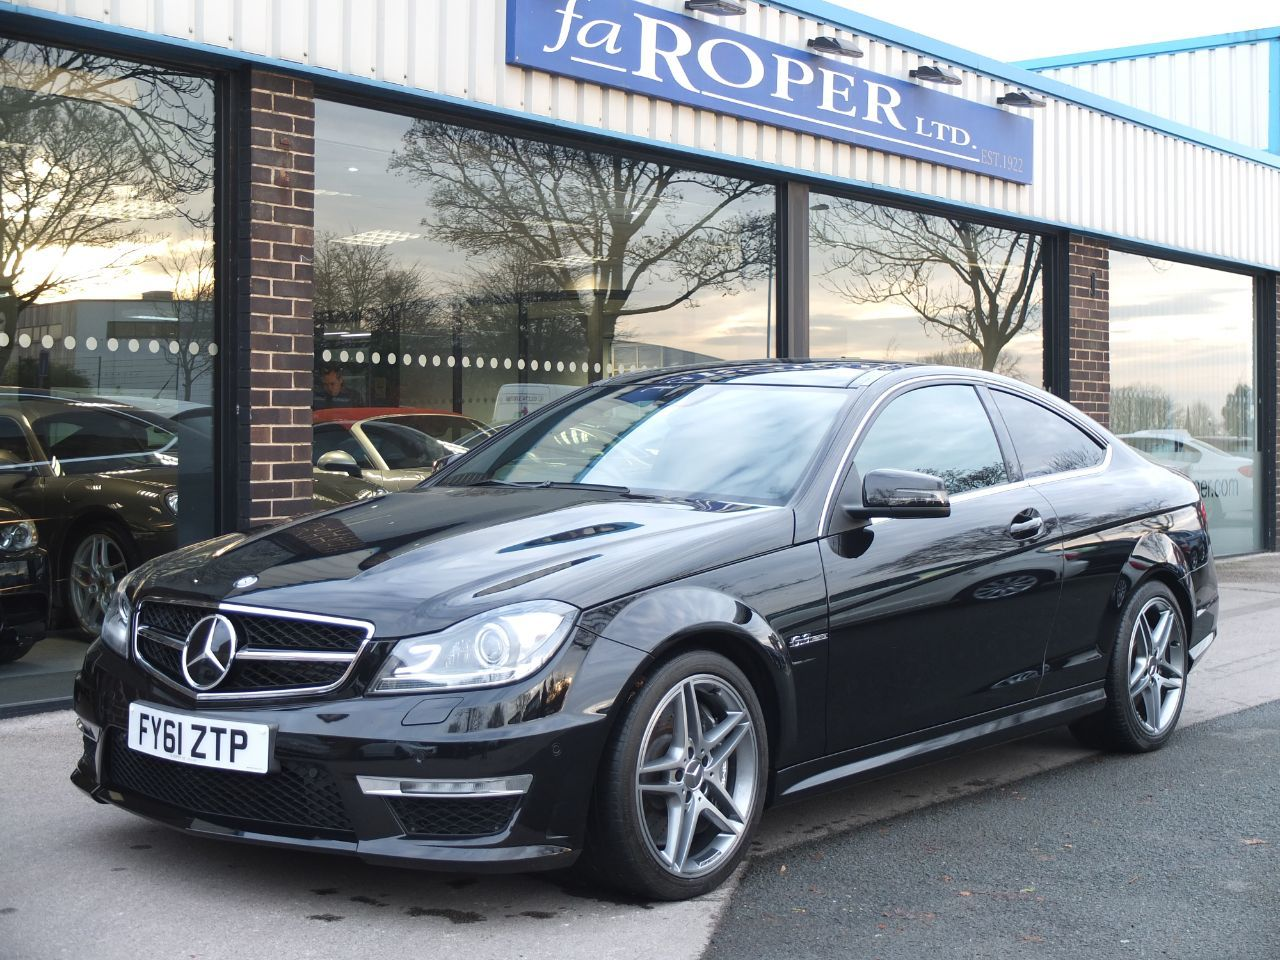 Mercedes-Benz C Class 6.2 C63 Edition 125 2dr Auto COUPE +++SPEC Coupe Petrol BlackMercedes-Benz C Class 6.2 C63 Edition 125 2dr Auto COUPE +++SPEC Coupe Petrol Black at fa Roper Ltd Bradford